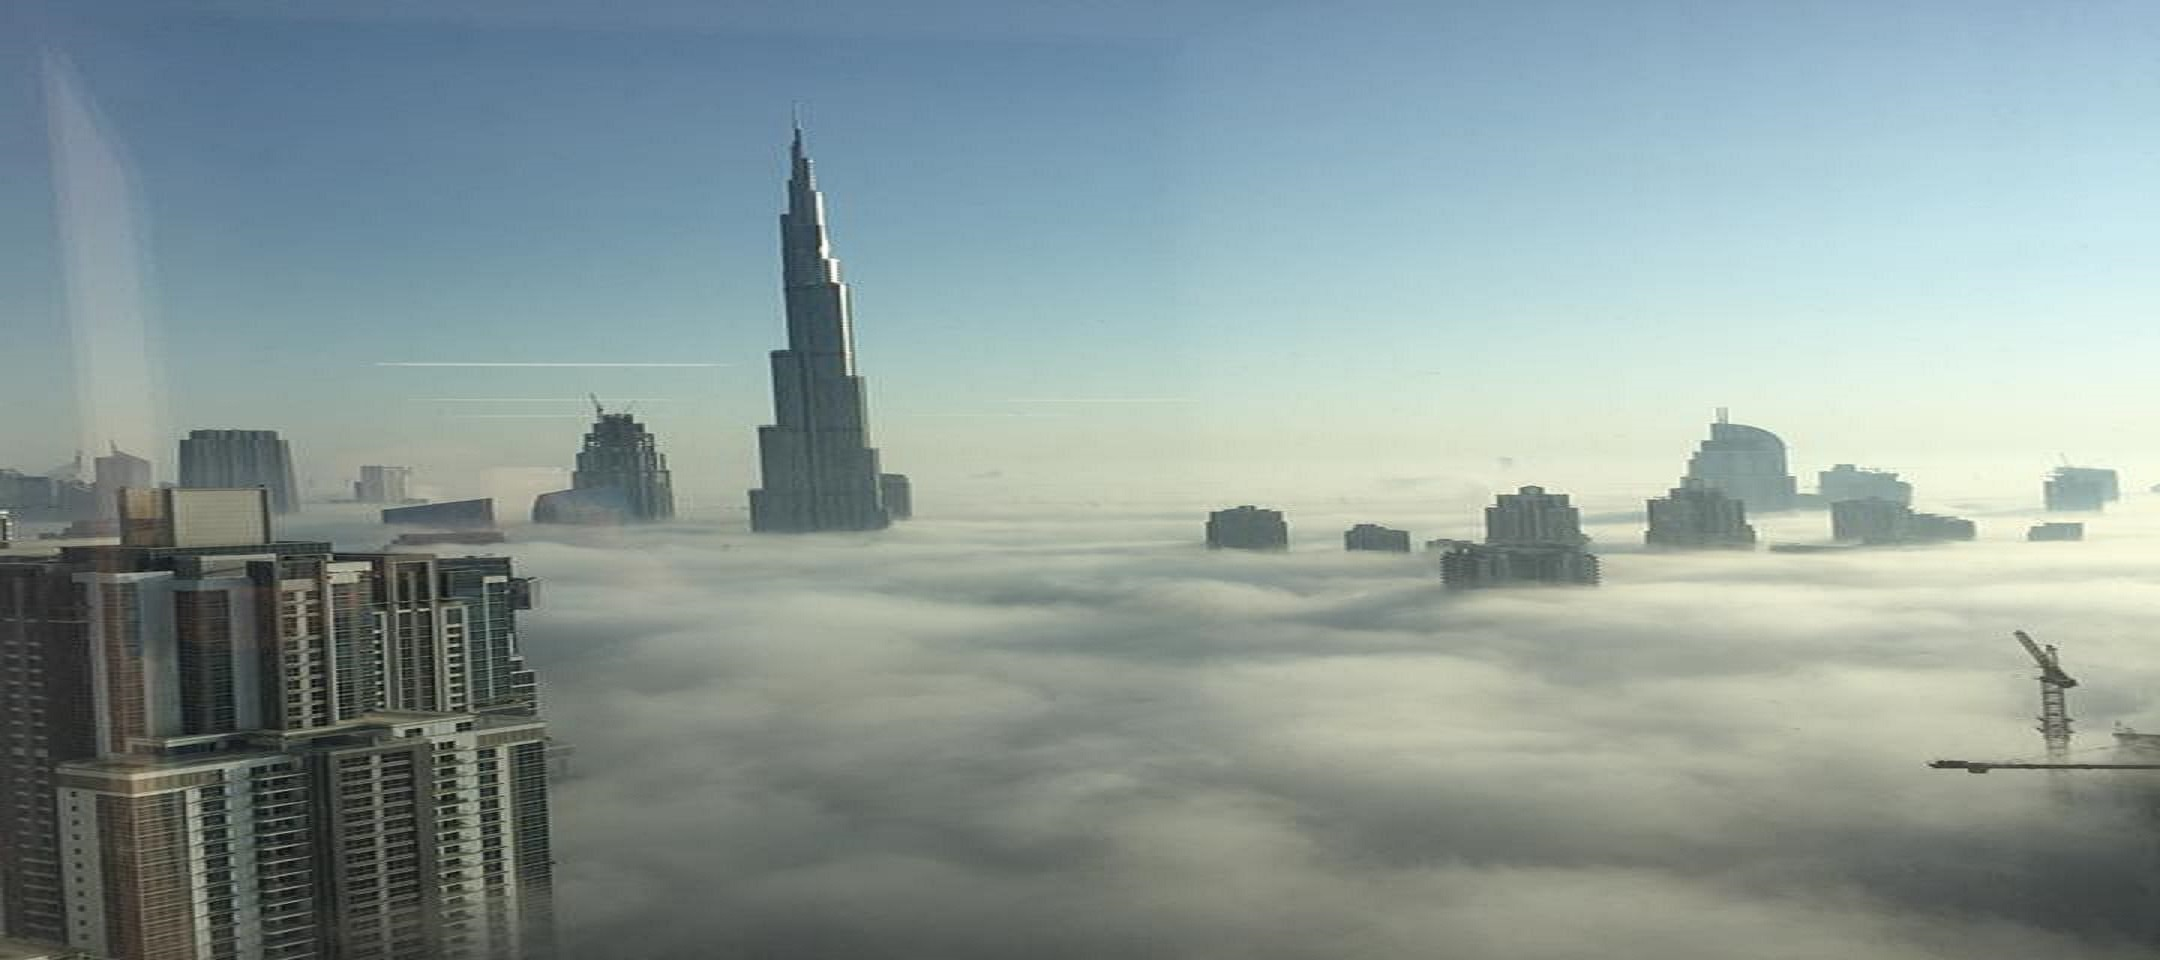 Dubai, United Arab Emirates - October 2015 Fog.